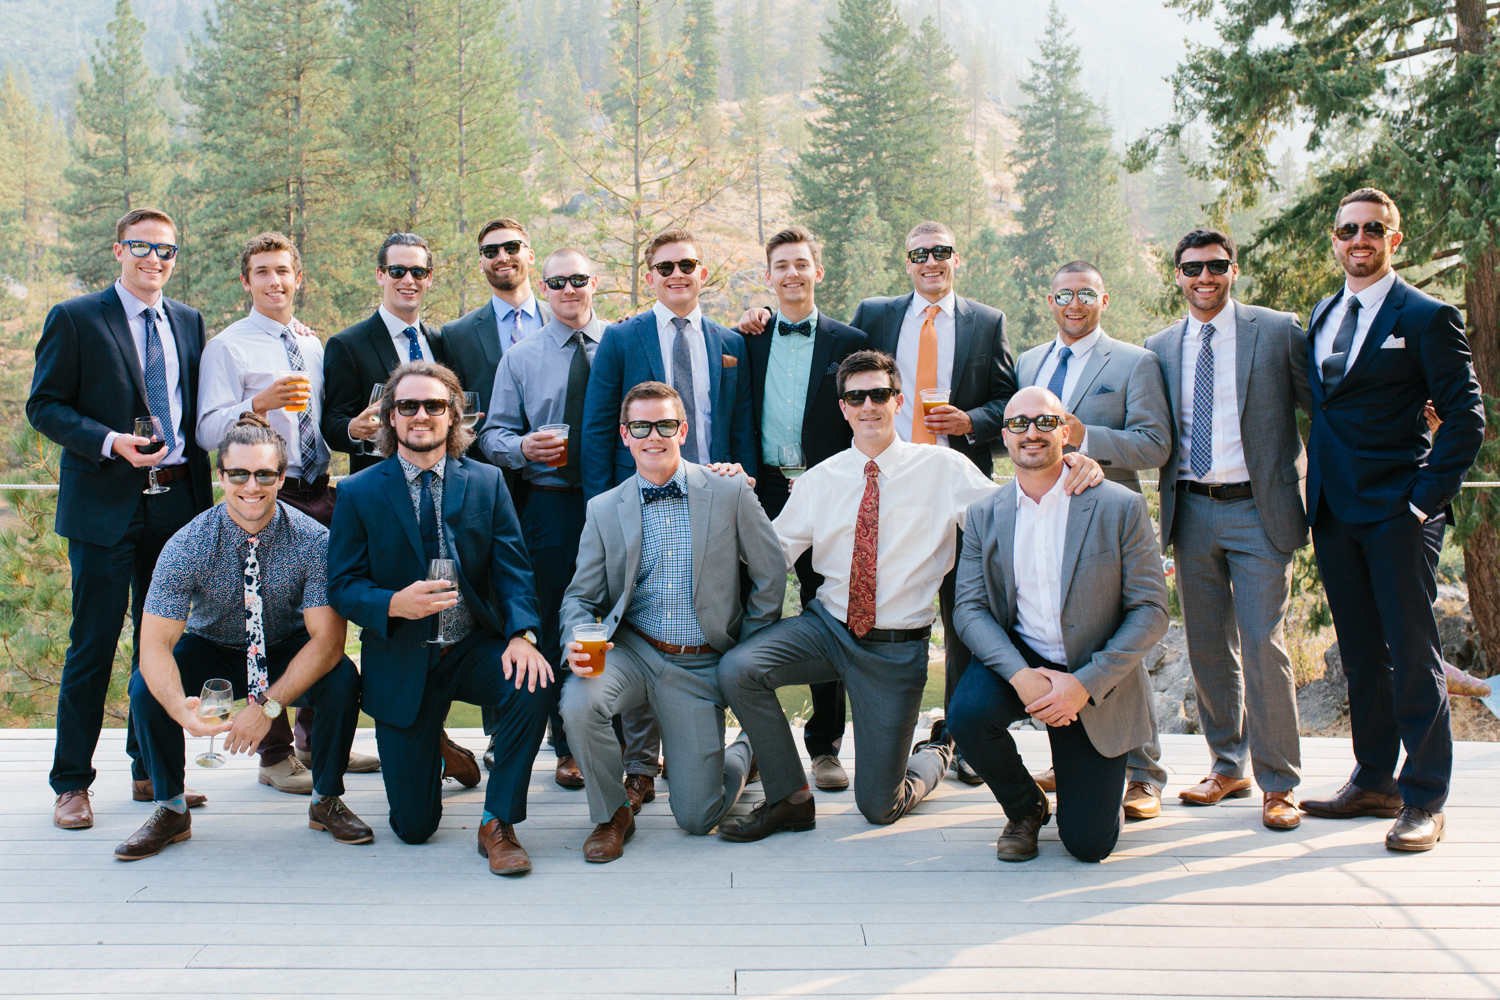 Grey and White Wedding in the Mountains of Leavenworth, Washington | Sleeping Lady | Classic and Timeless Wedding | VSCO | Sleeping Lady Wedding Reception.jpg-1280.jpg